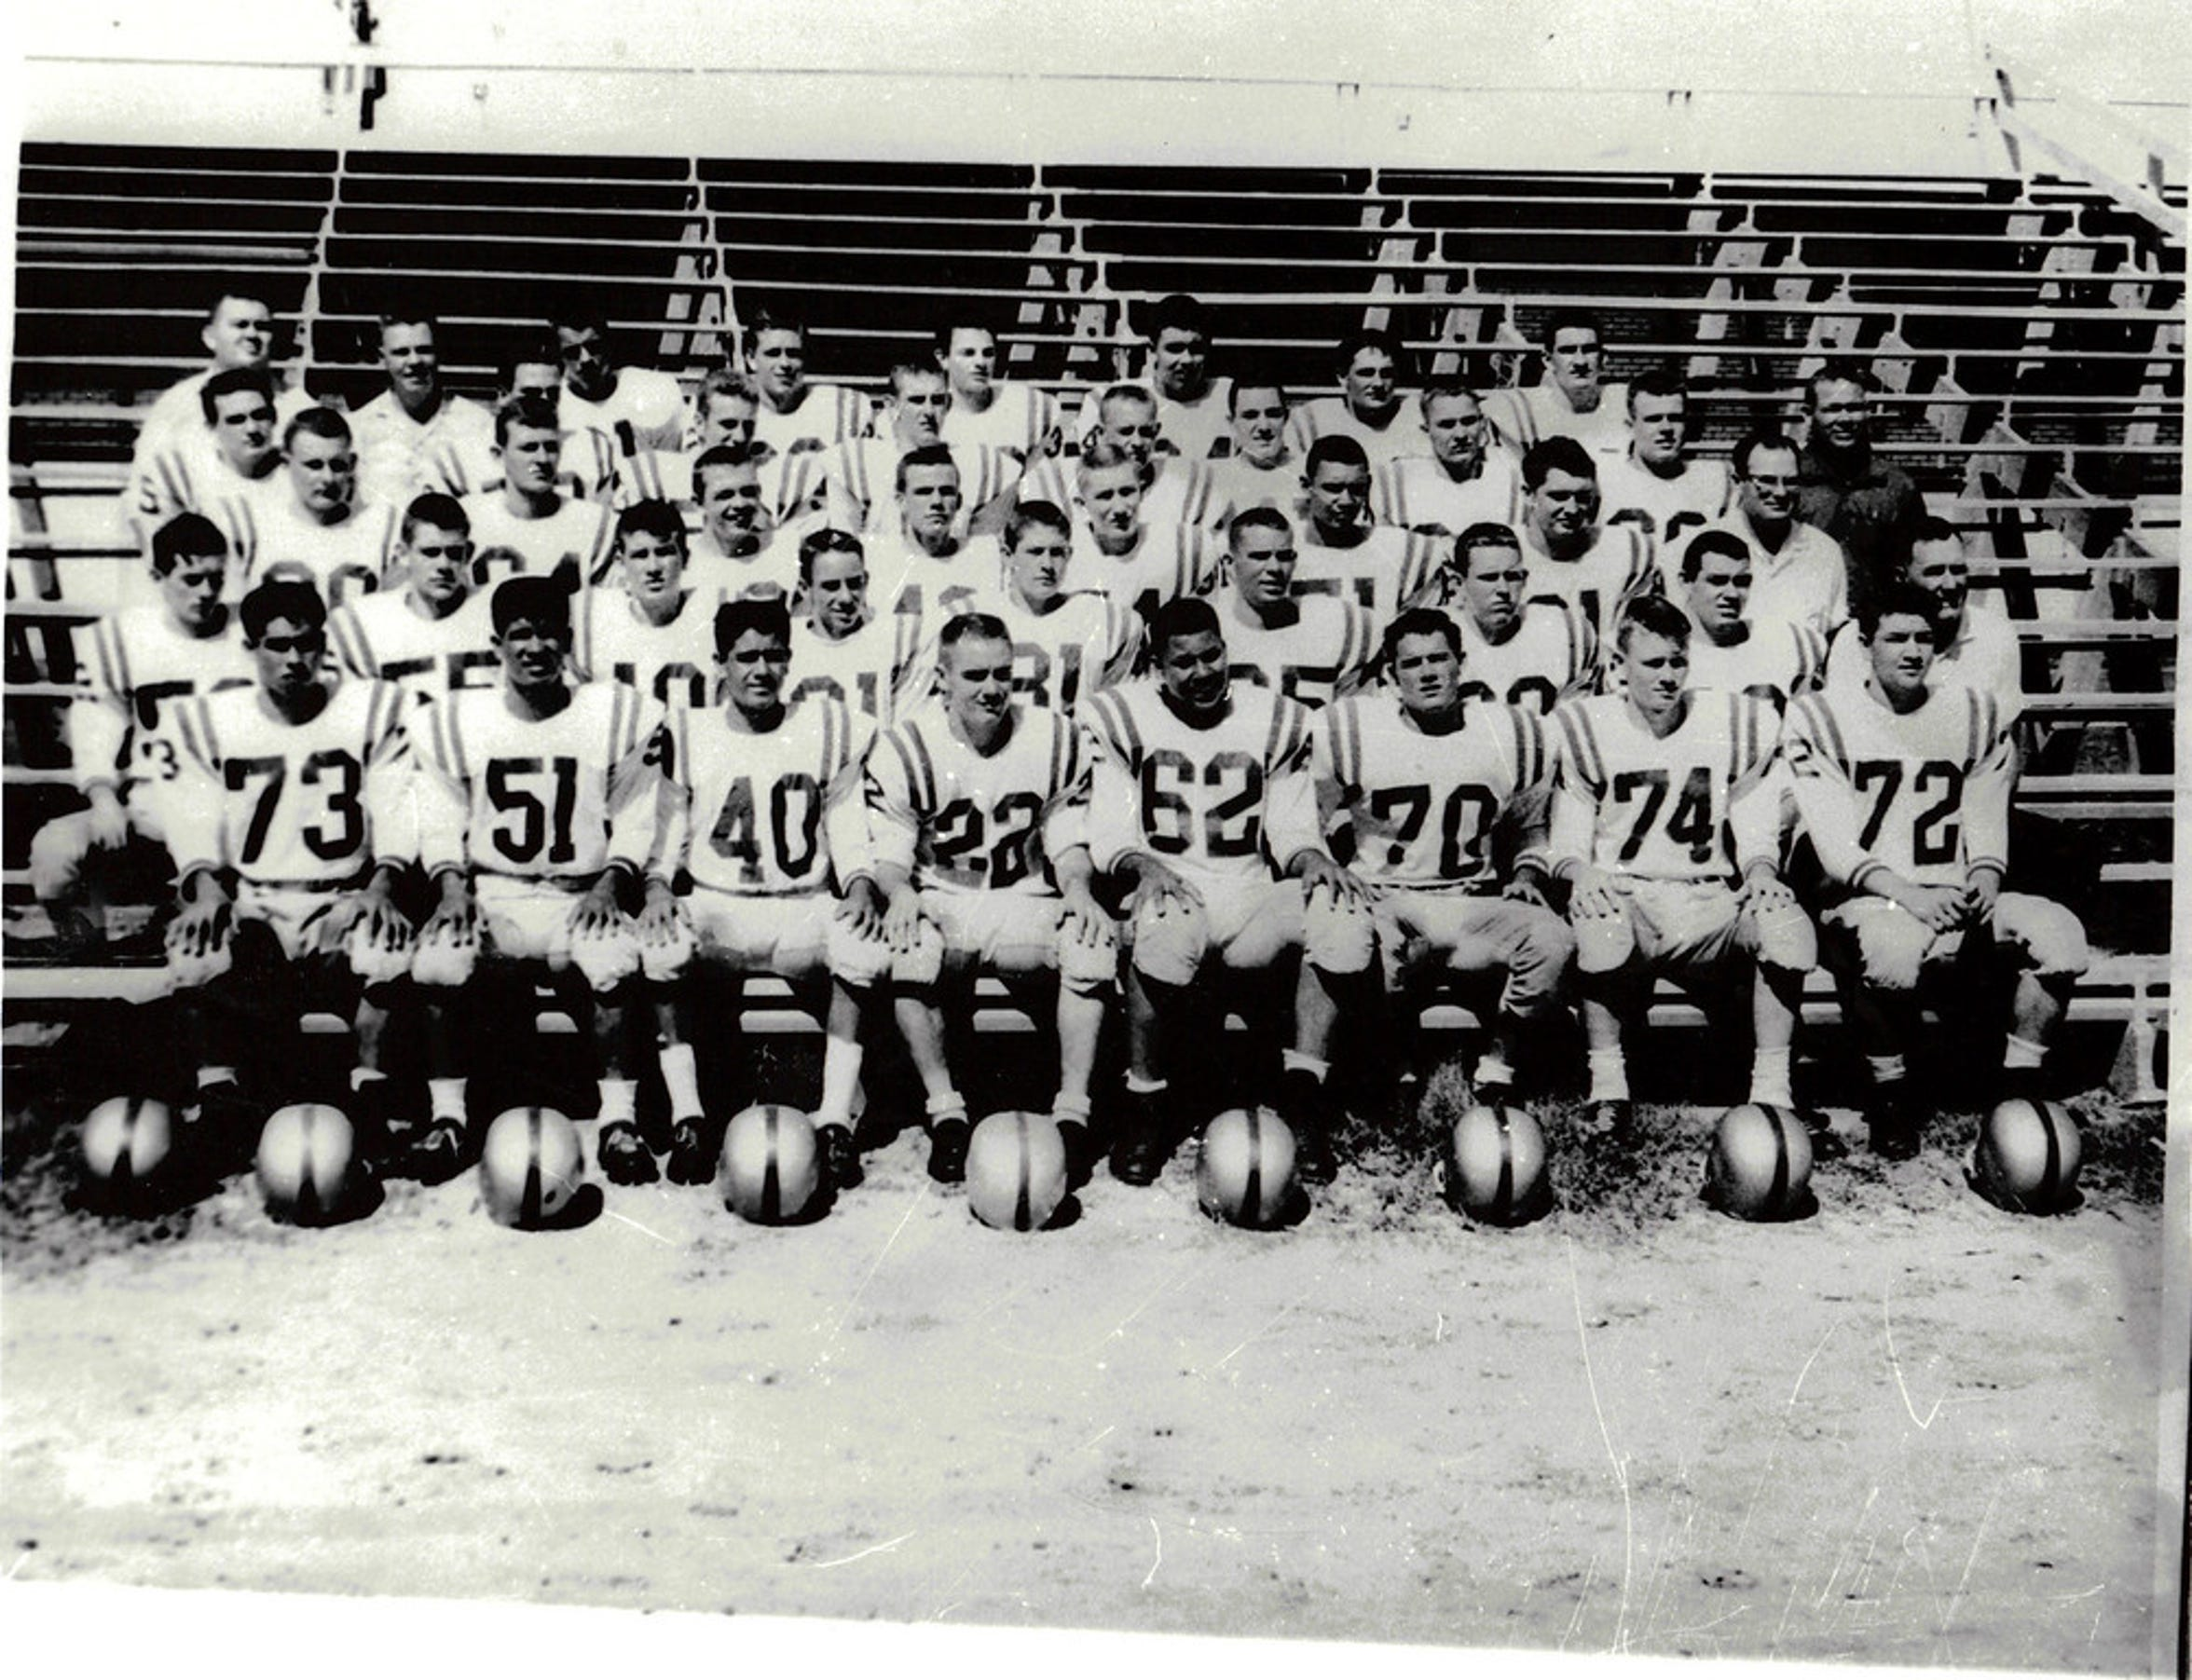 The Carlsbad Cavemen 1956/1957 football team posed in uniform, in the bleachers. Only the three coaches are known: Head Coach Ralph Bowyer and Assistant Coaches Joe Stell and Joe Willis New Mexico Carlsbad.